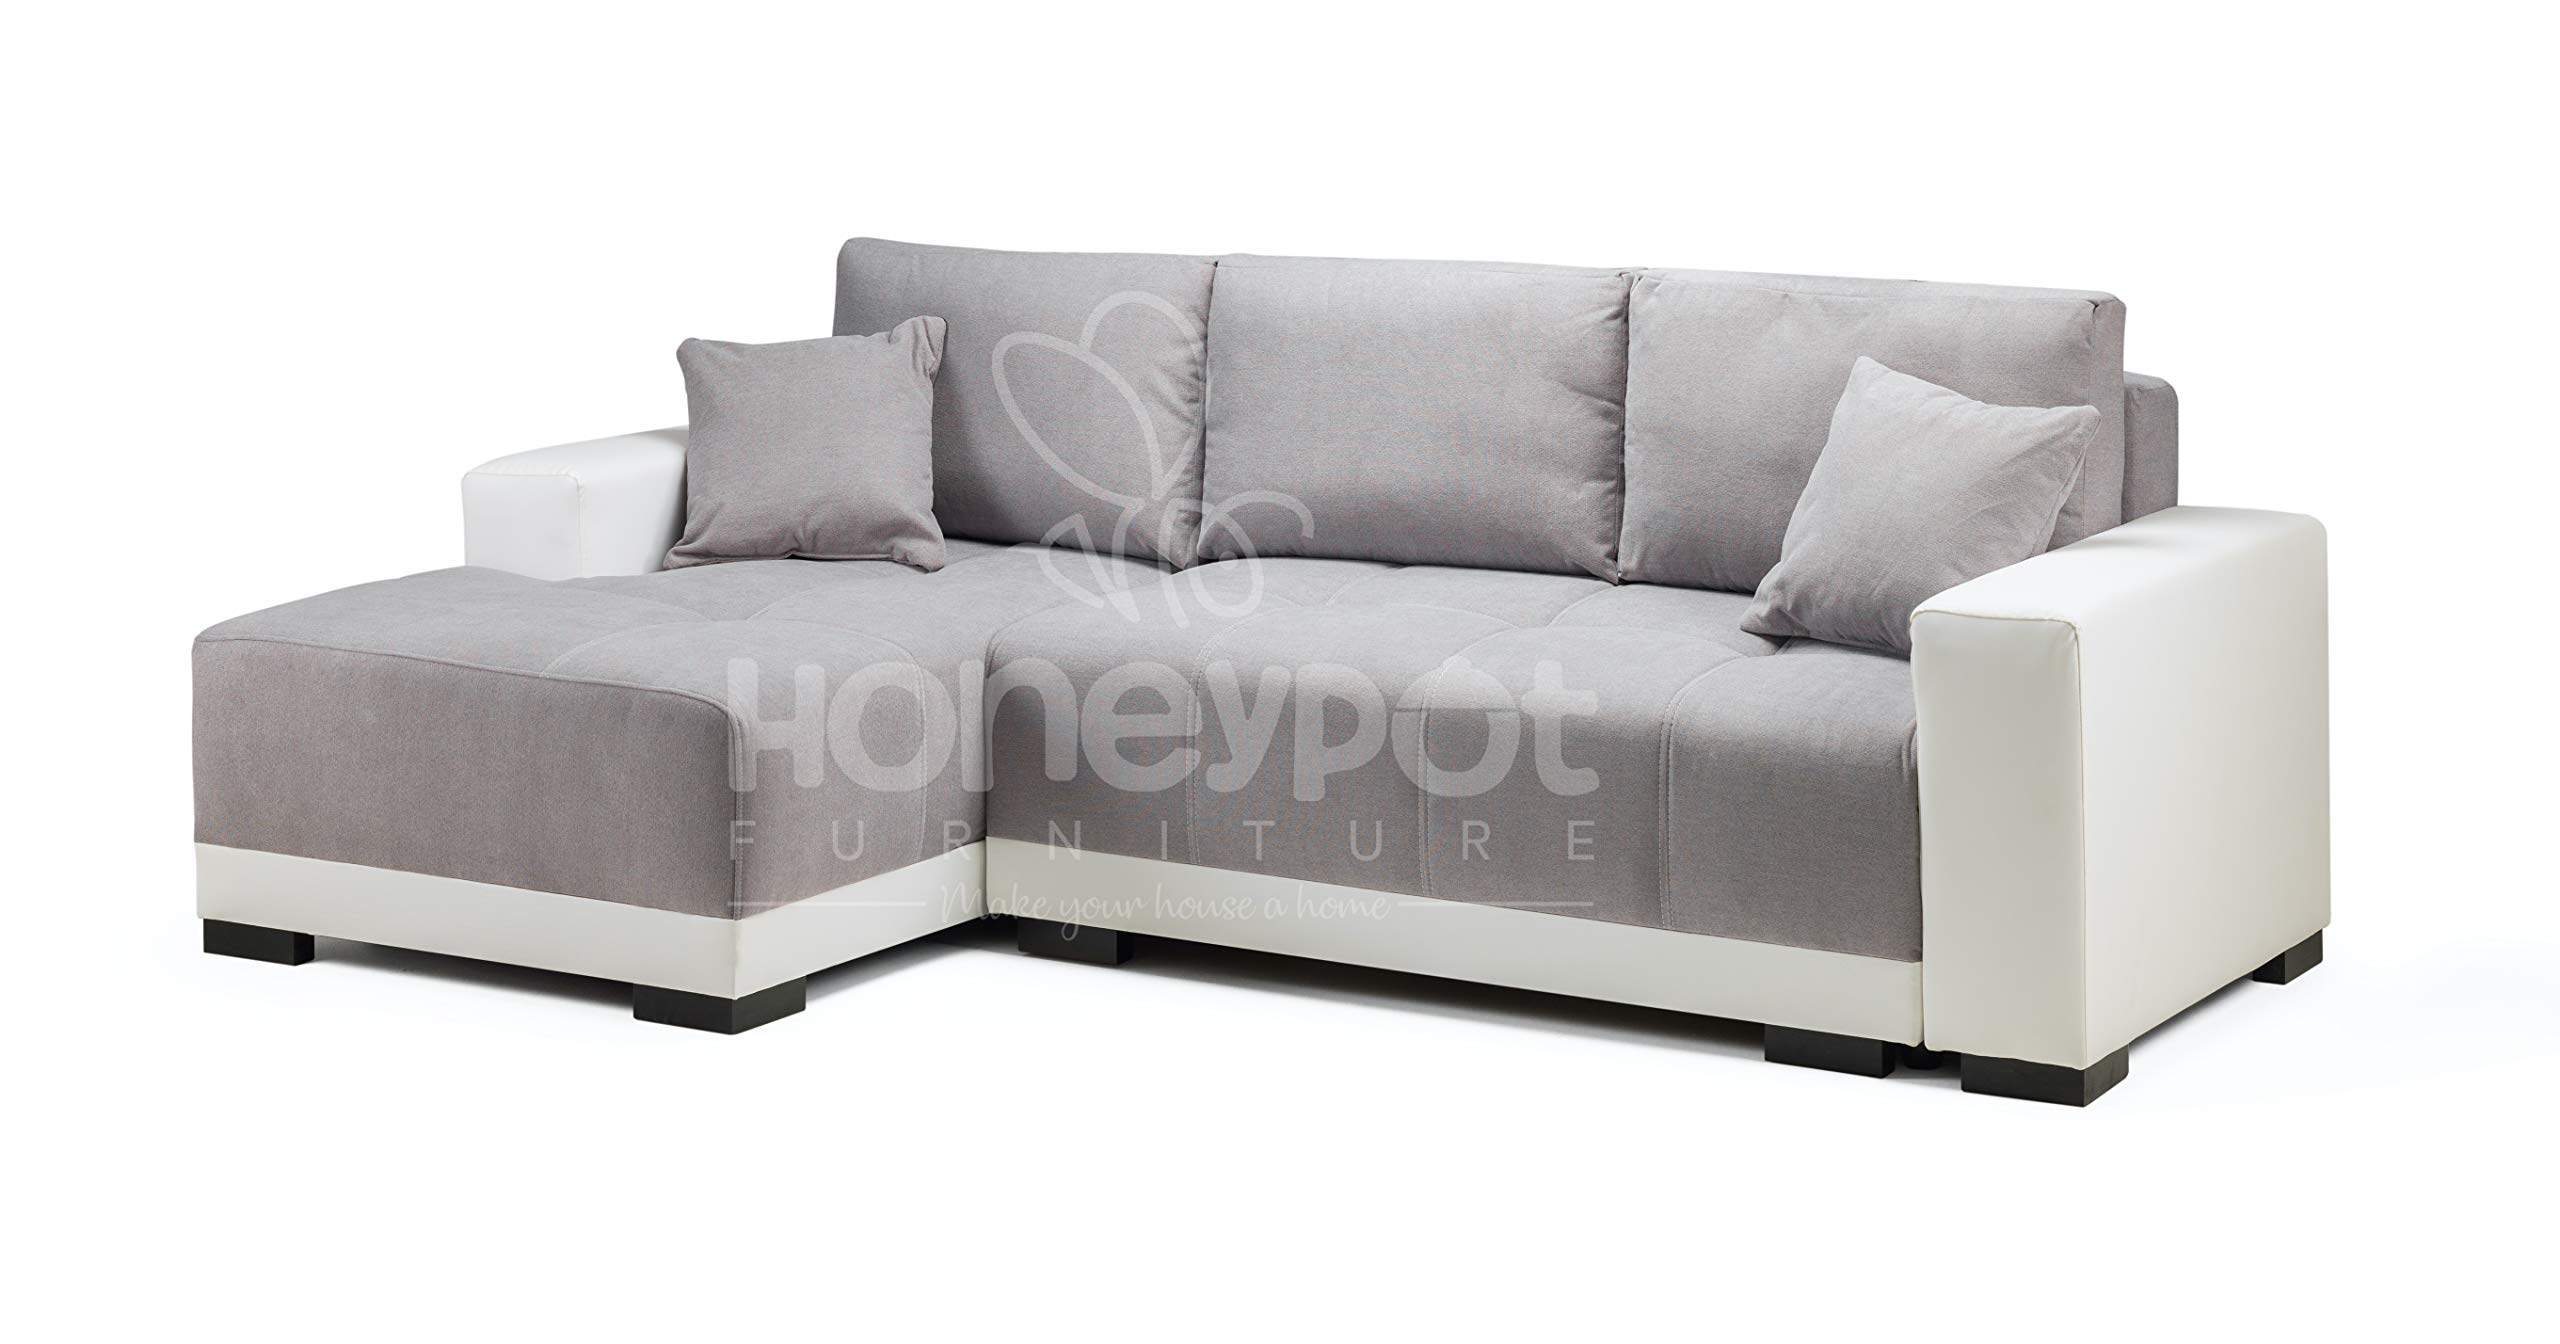 Honeypot Sofa Cimiano Corner Sofa Be Buy Online In Trinidad And Tobago At Desertcart